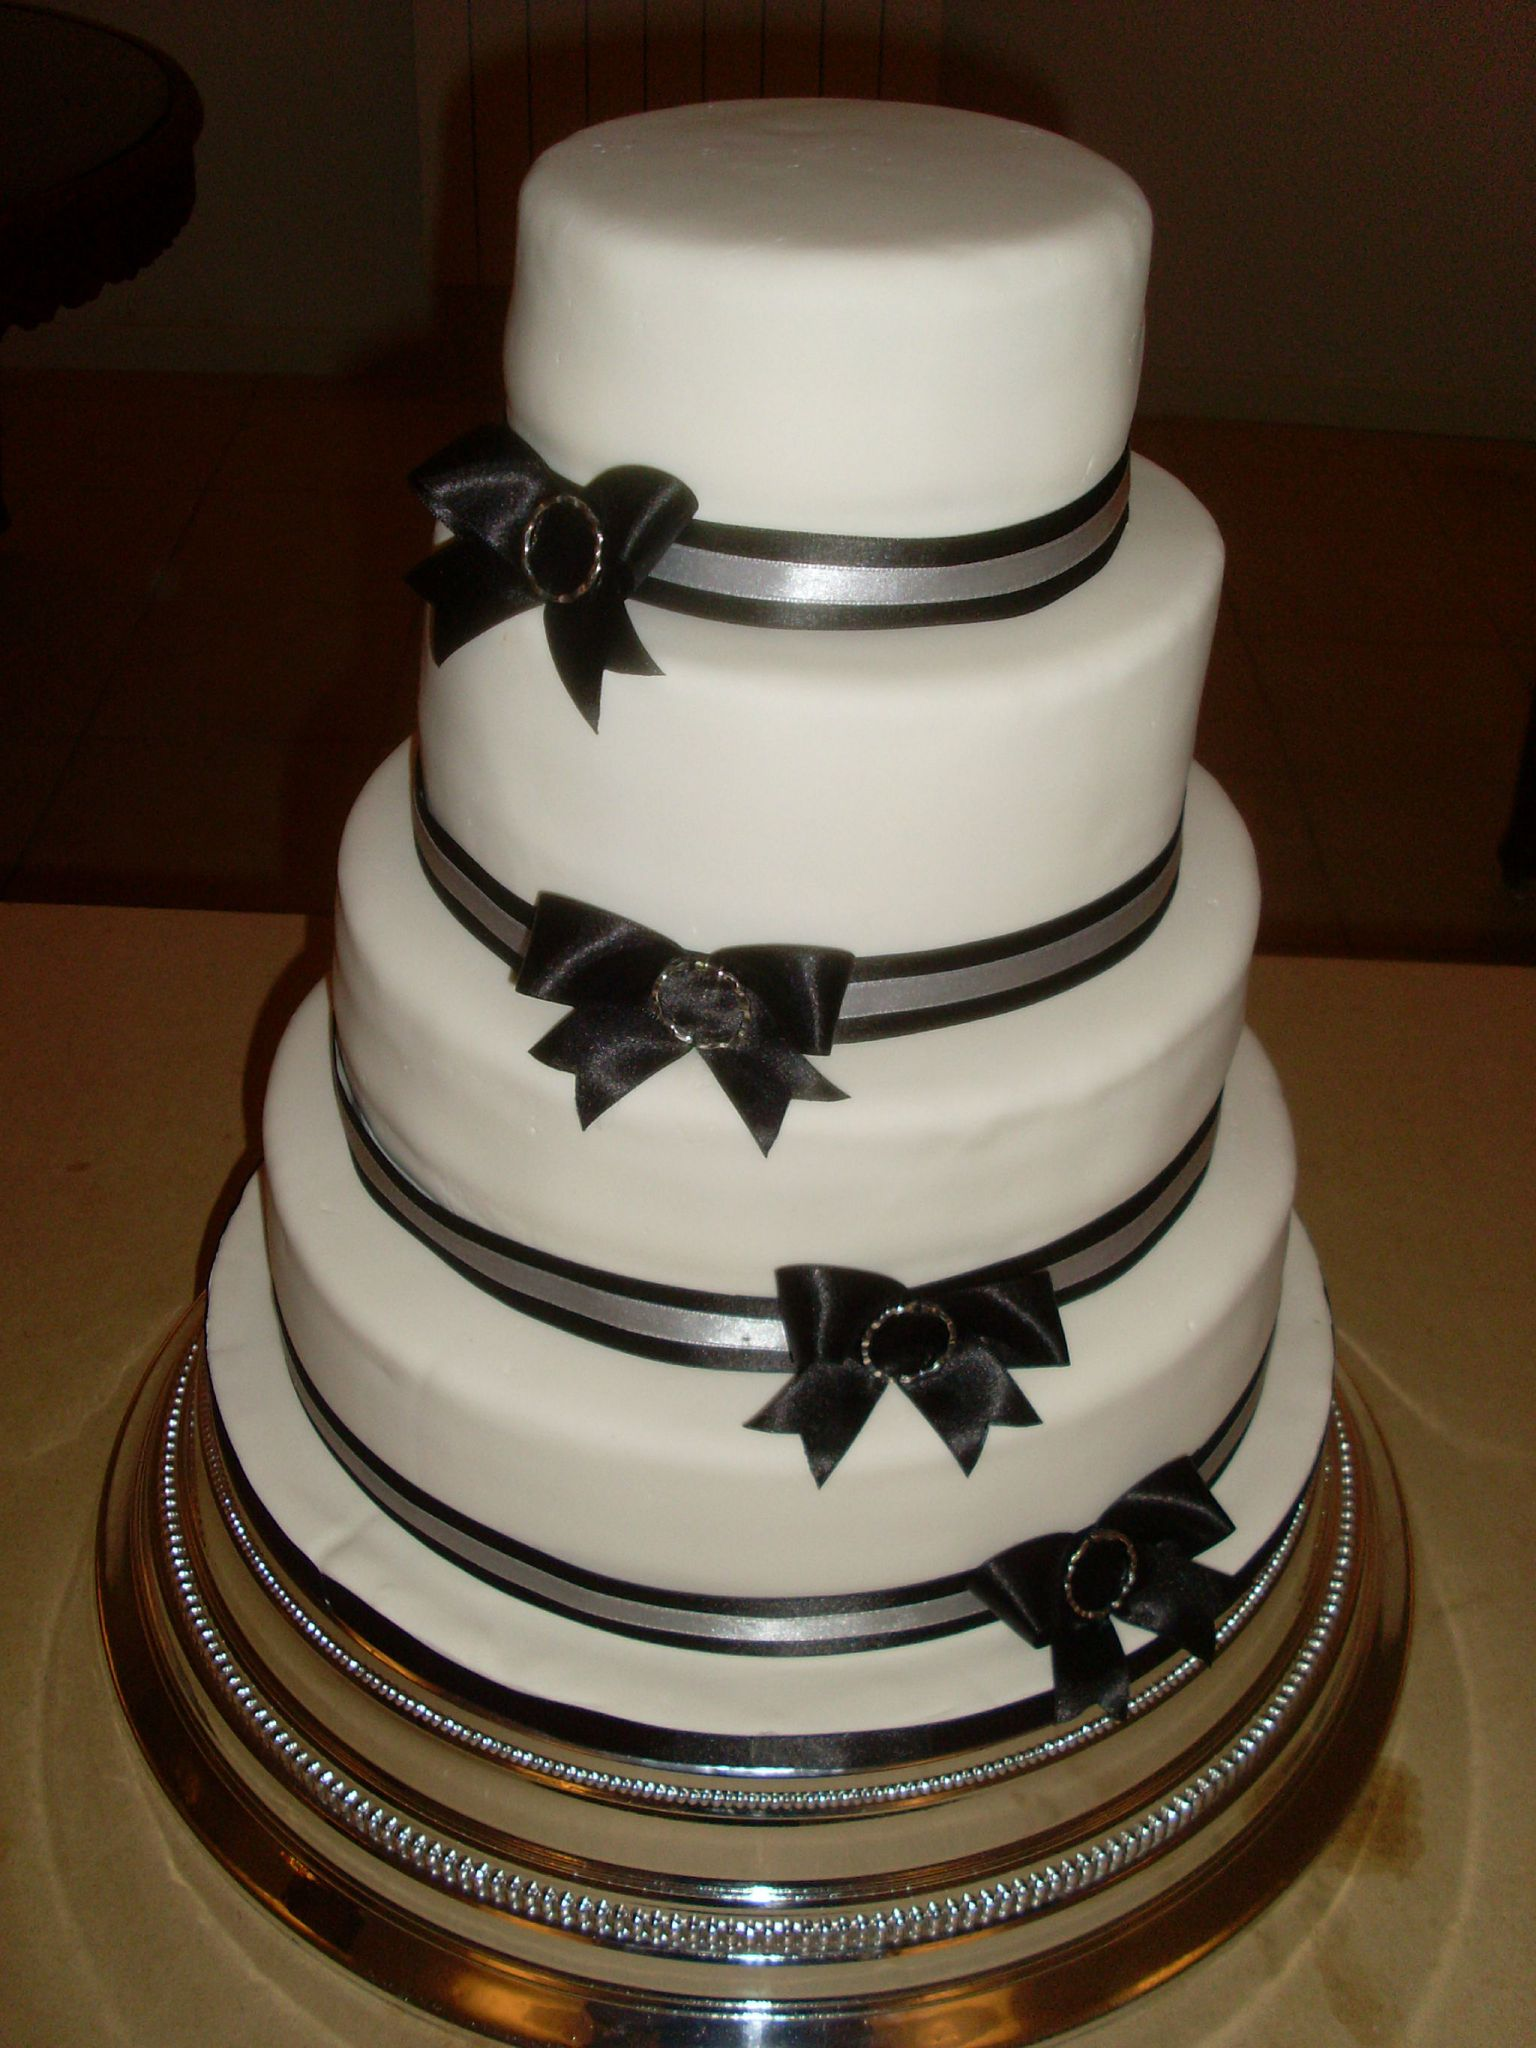 Wedding Cake Noir et Blanc 130 personnes - Julias Wedding Cakes  www ...